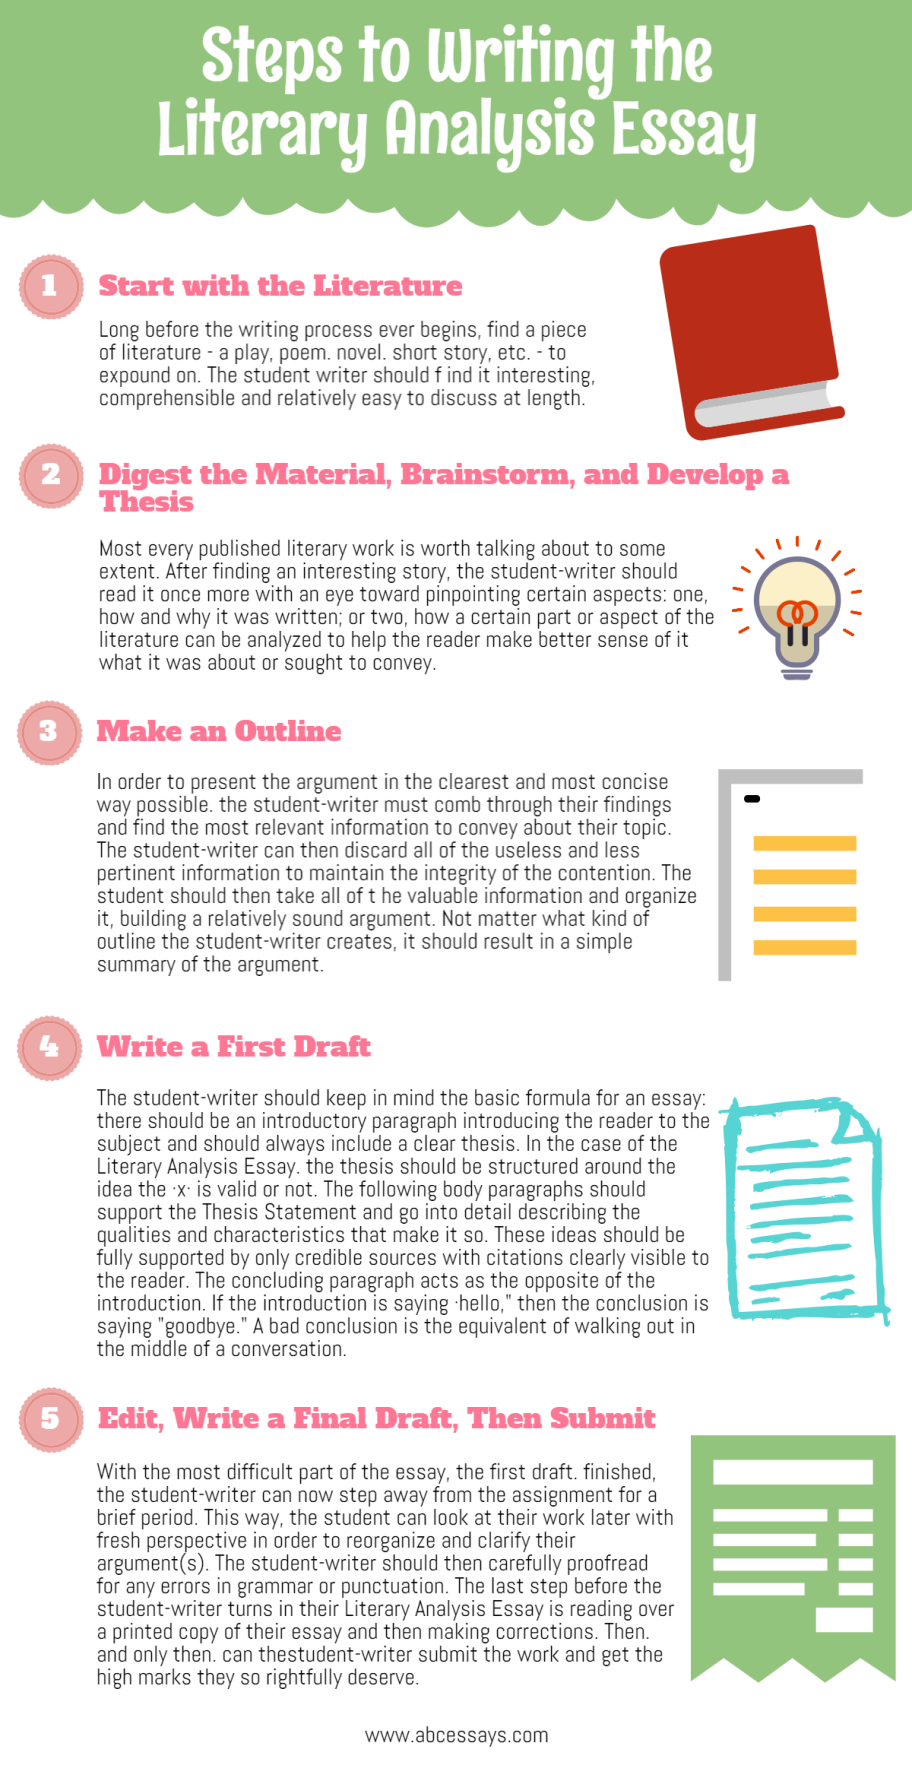 check this out abcessays recomends awesome guide for writing a check out this piece of infographice on literary analysis essay writing